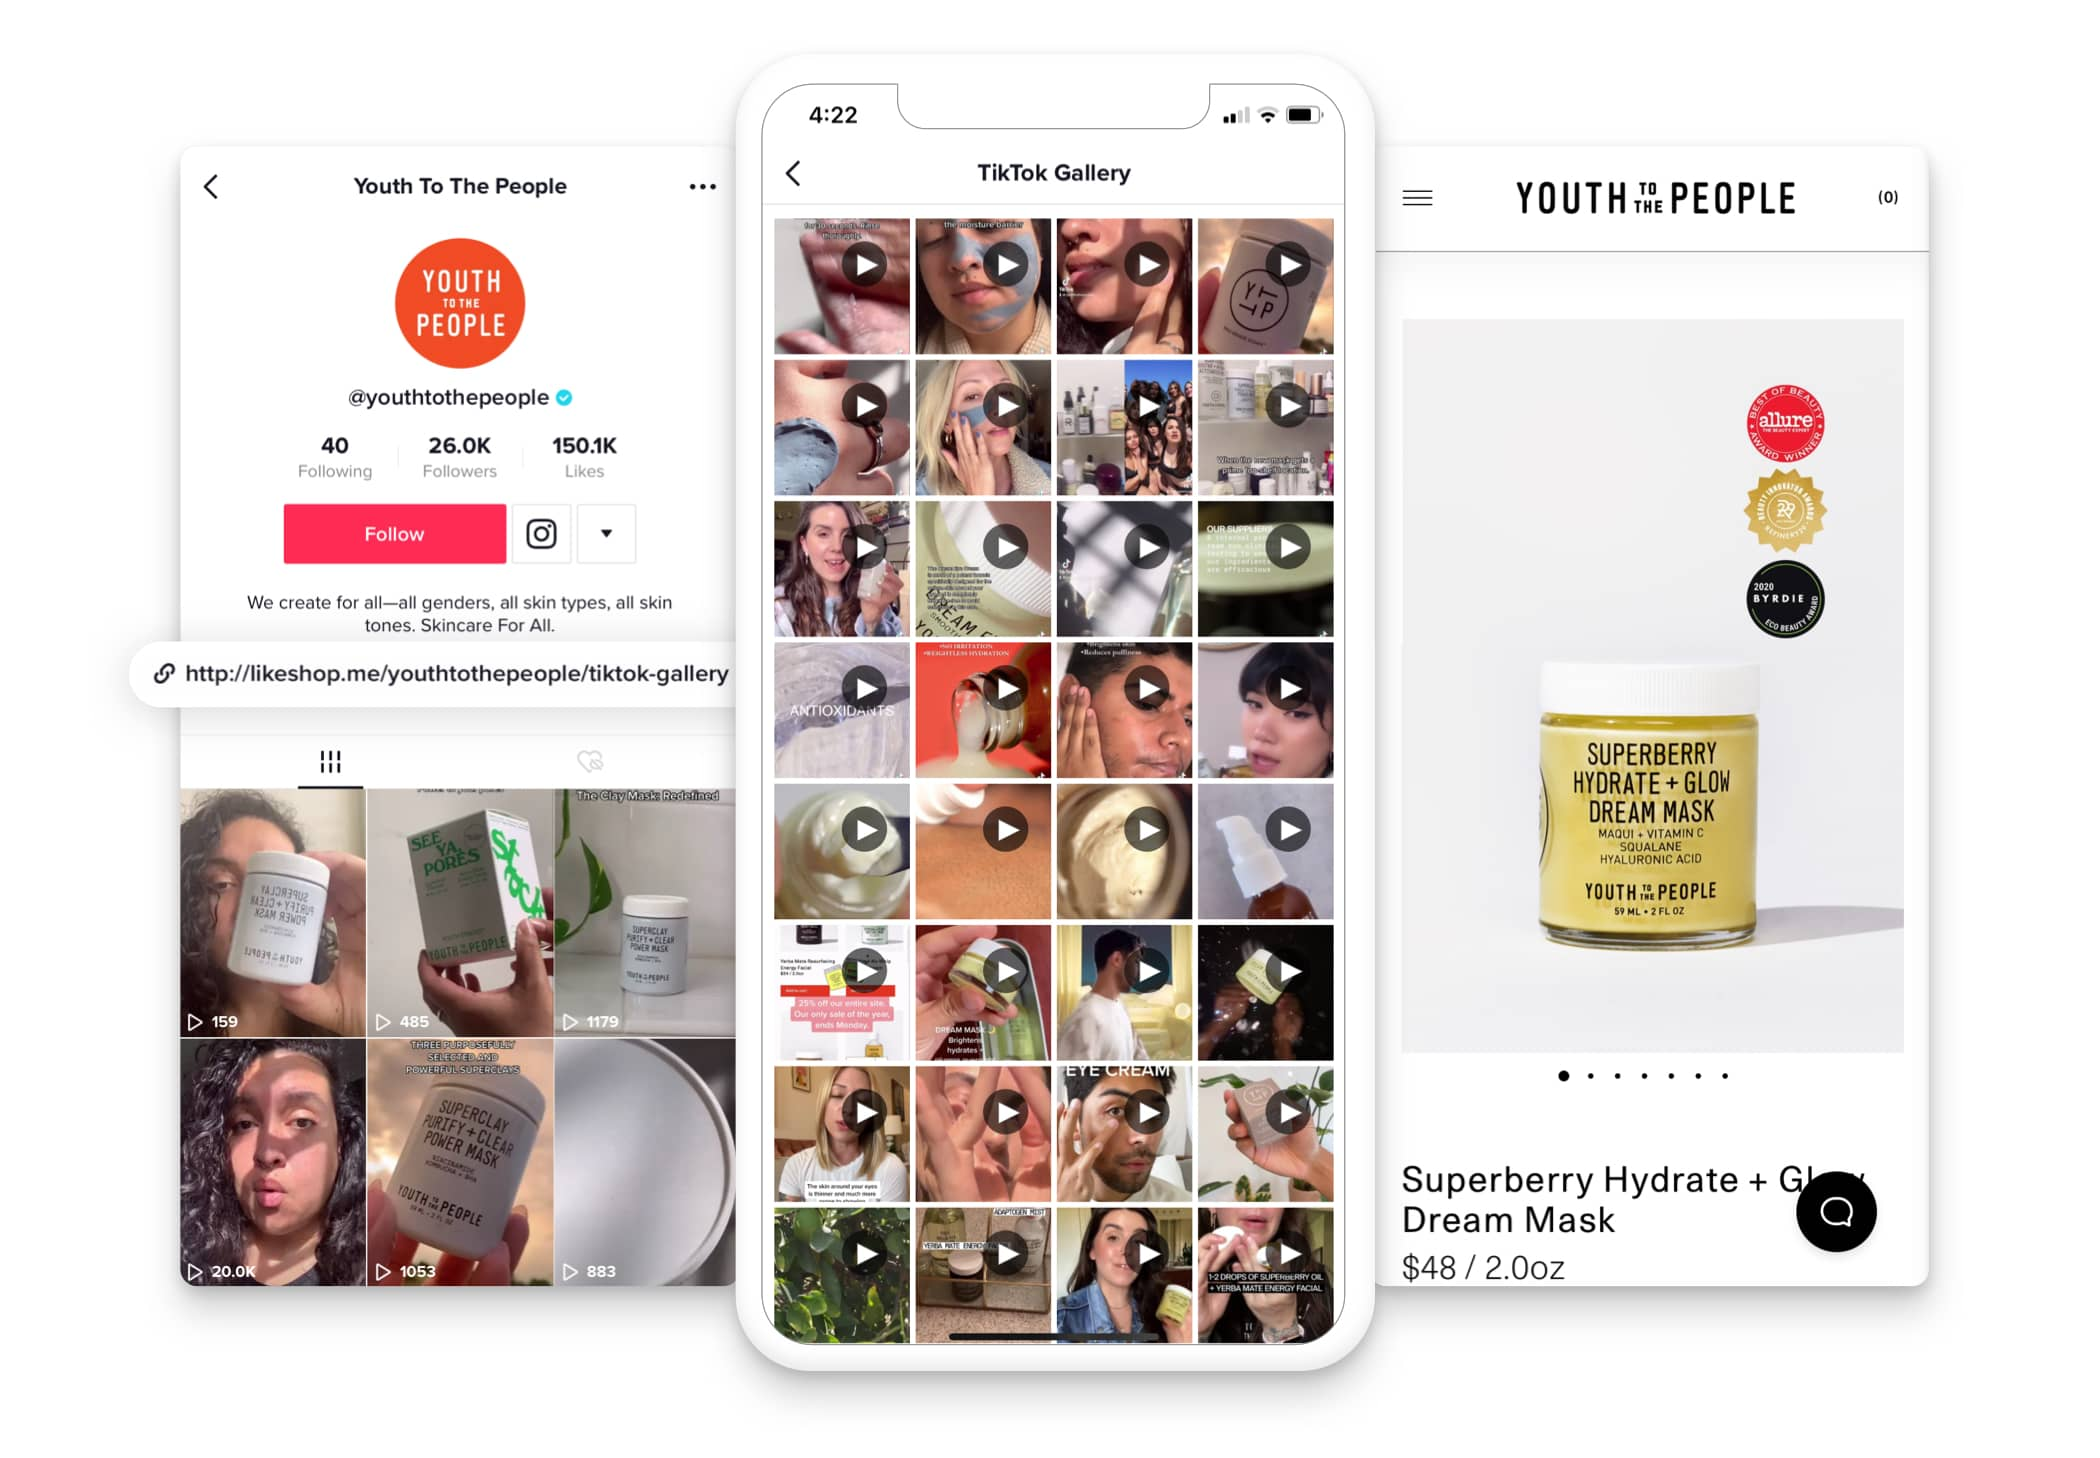 Youth To The People using a Dash Hudson Spirit Gallery URL on TikTok